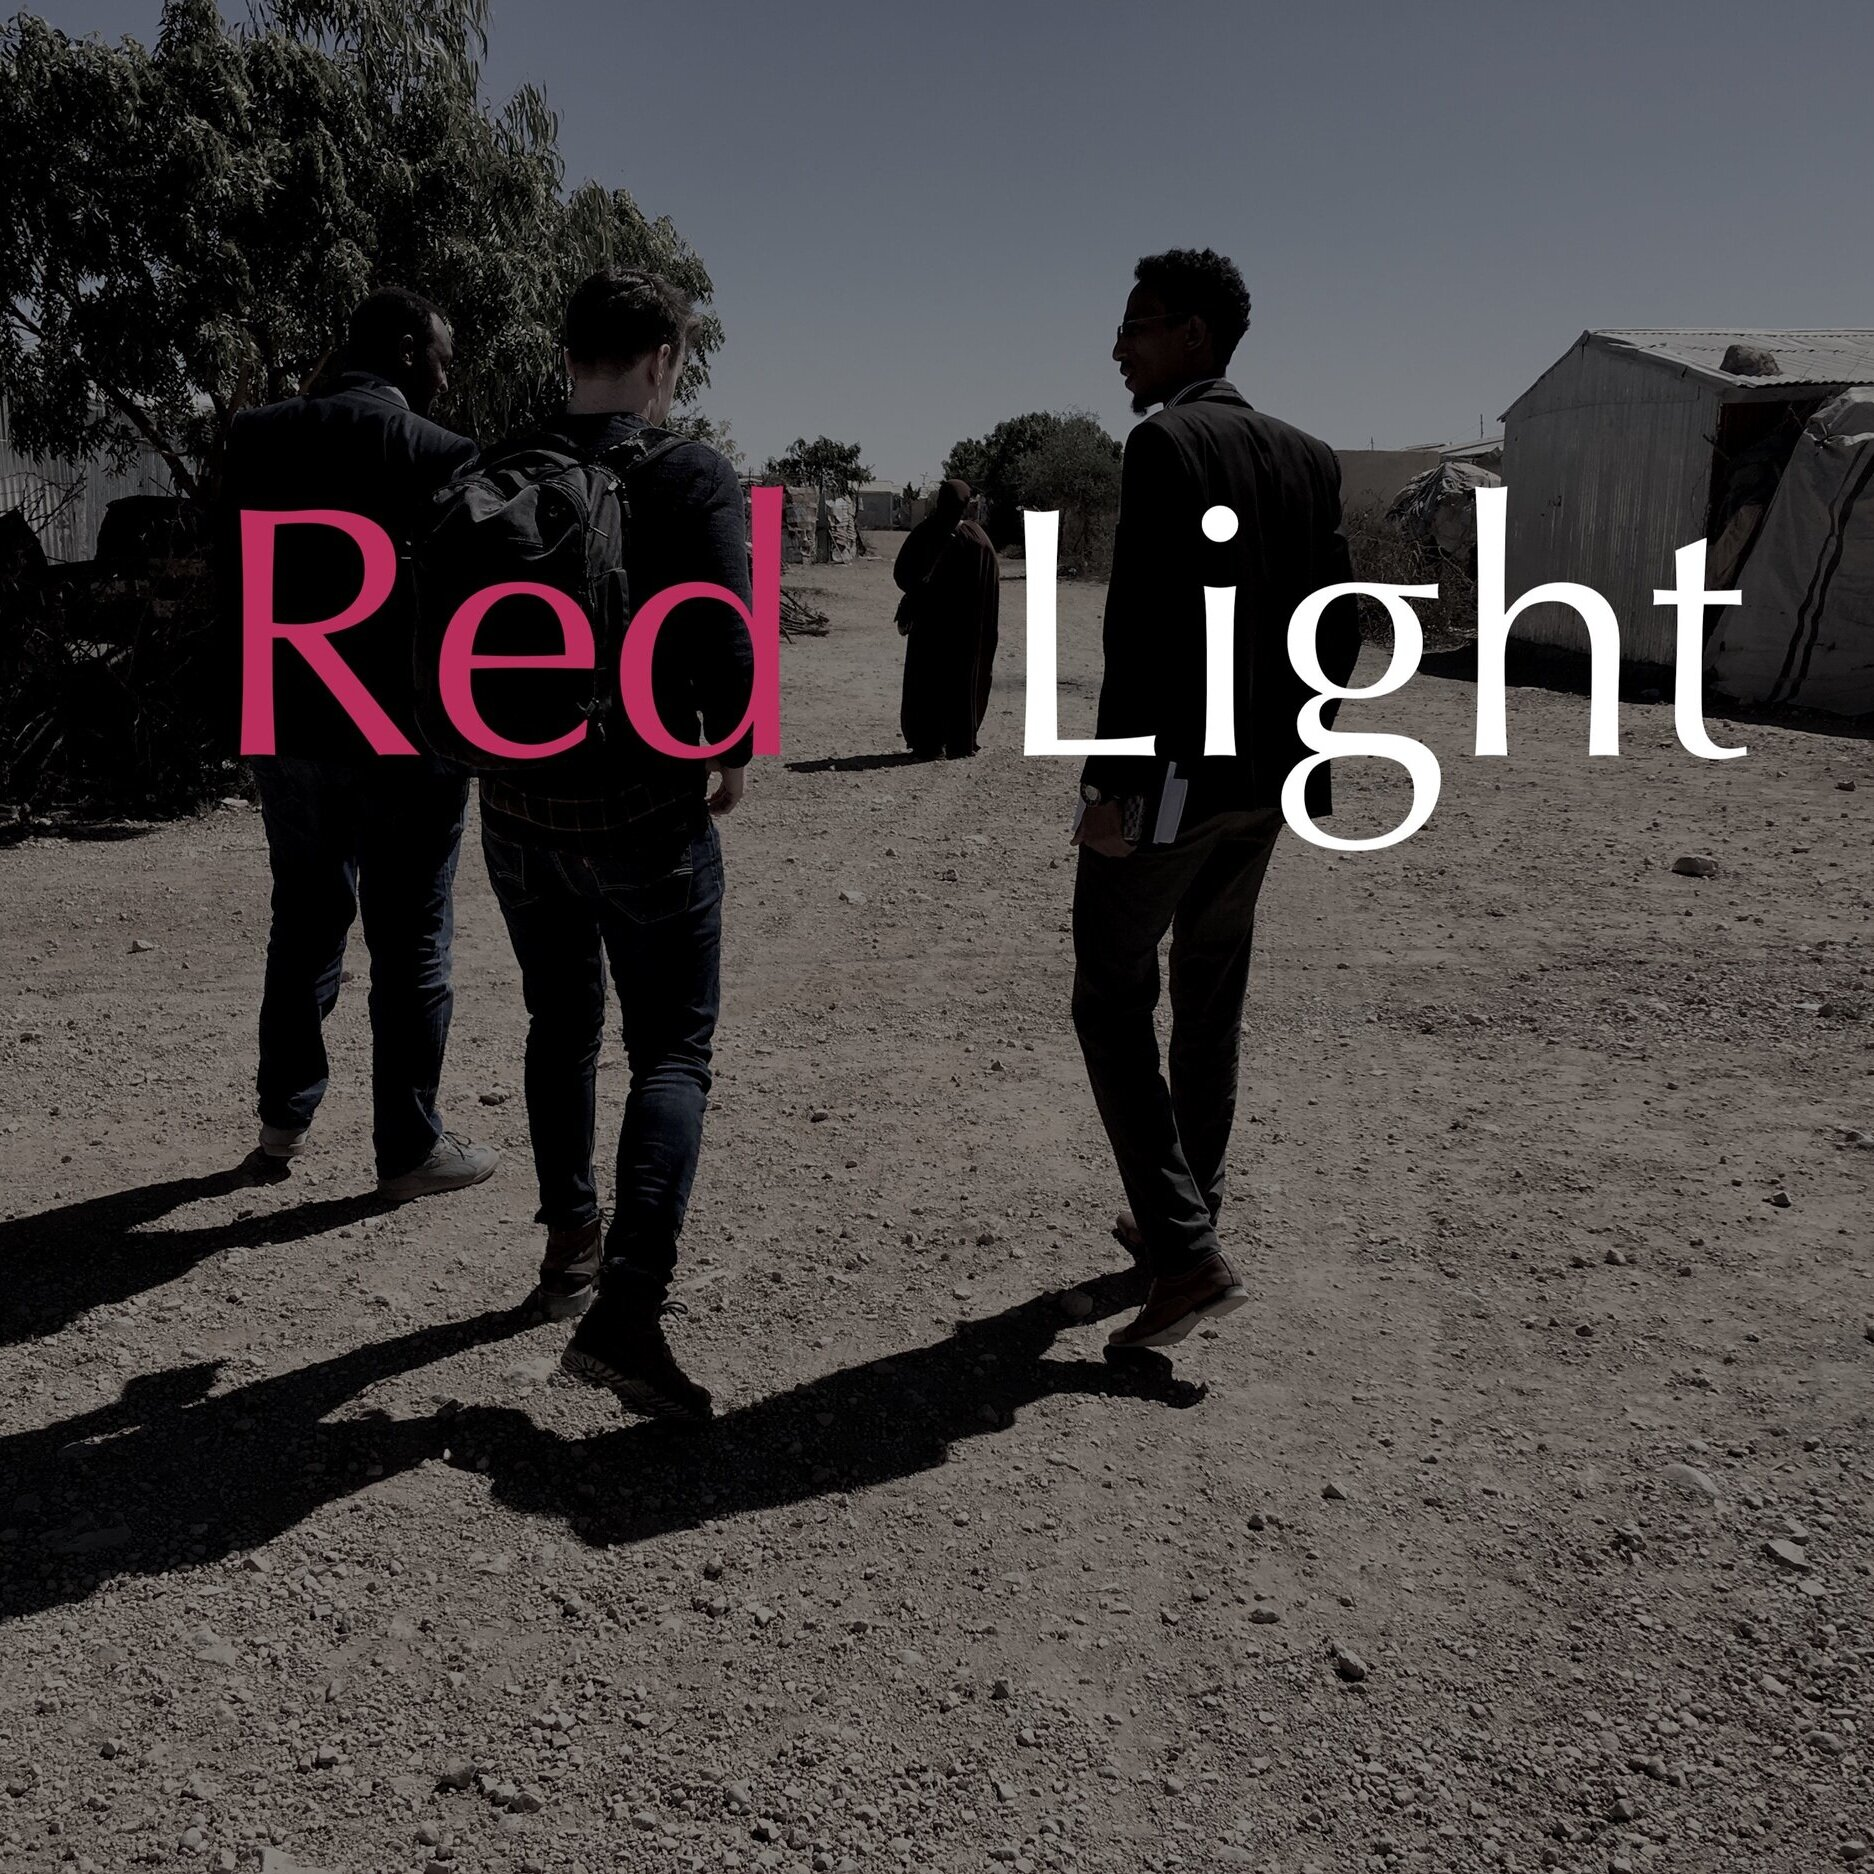 Support RED LIGHT: One of Scotland's first investigative research initiatives - The Third Generation Project has begun forming one of the first investigative research initiatives in Scotland that aims to shed light on climate injustices inflicted upon communities. Please donate and support RED LIGHT today!